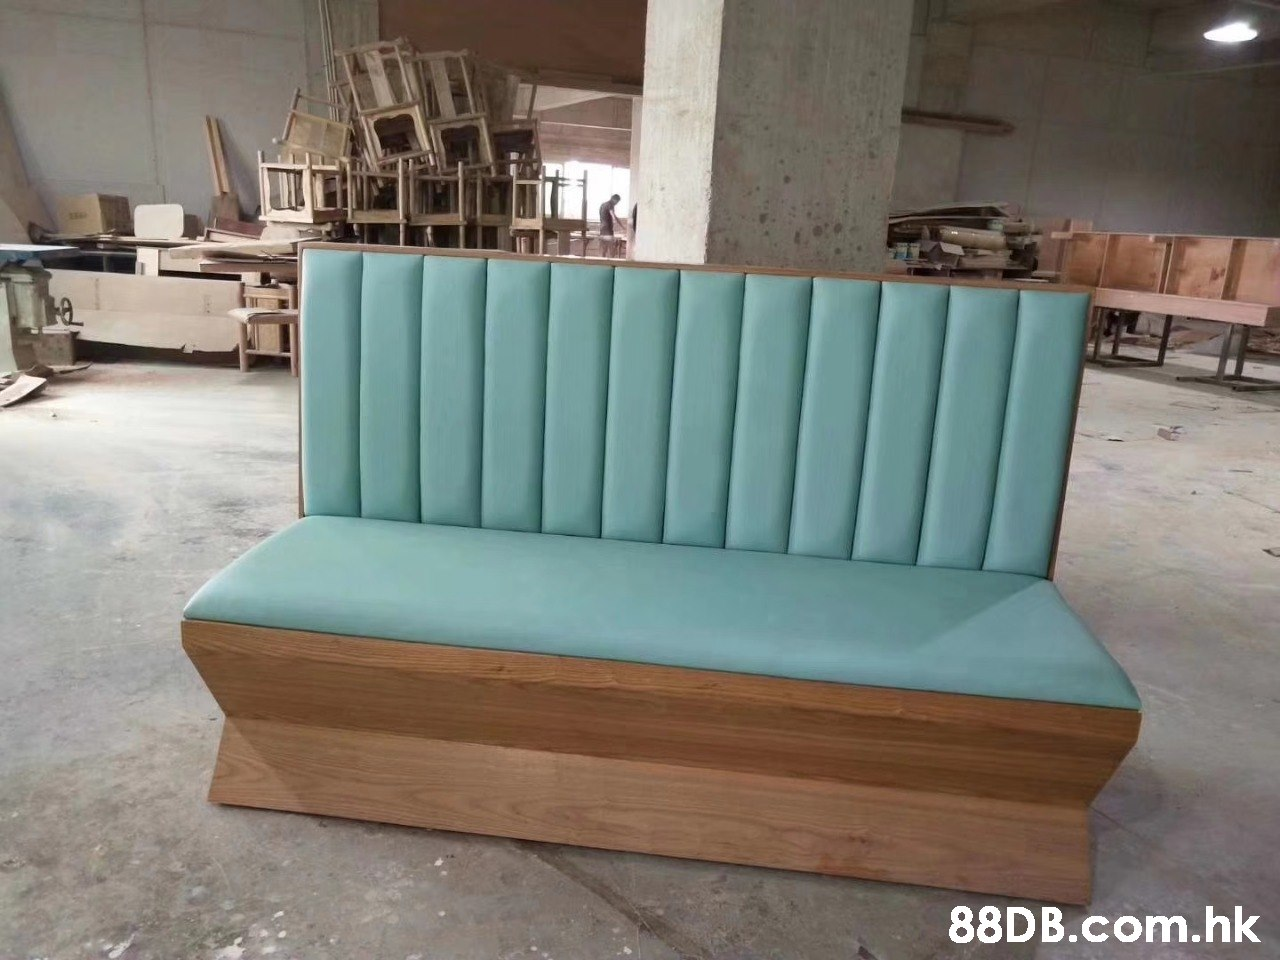 .hk  Furniture,Couch,Sofa bed,Room,Chair